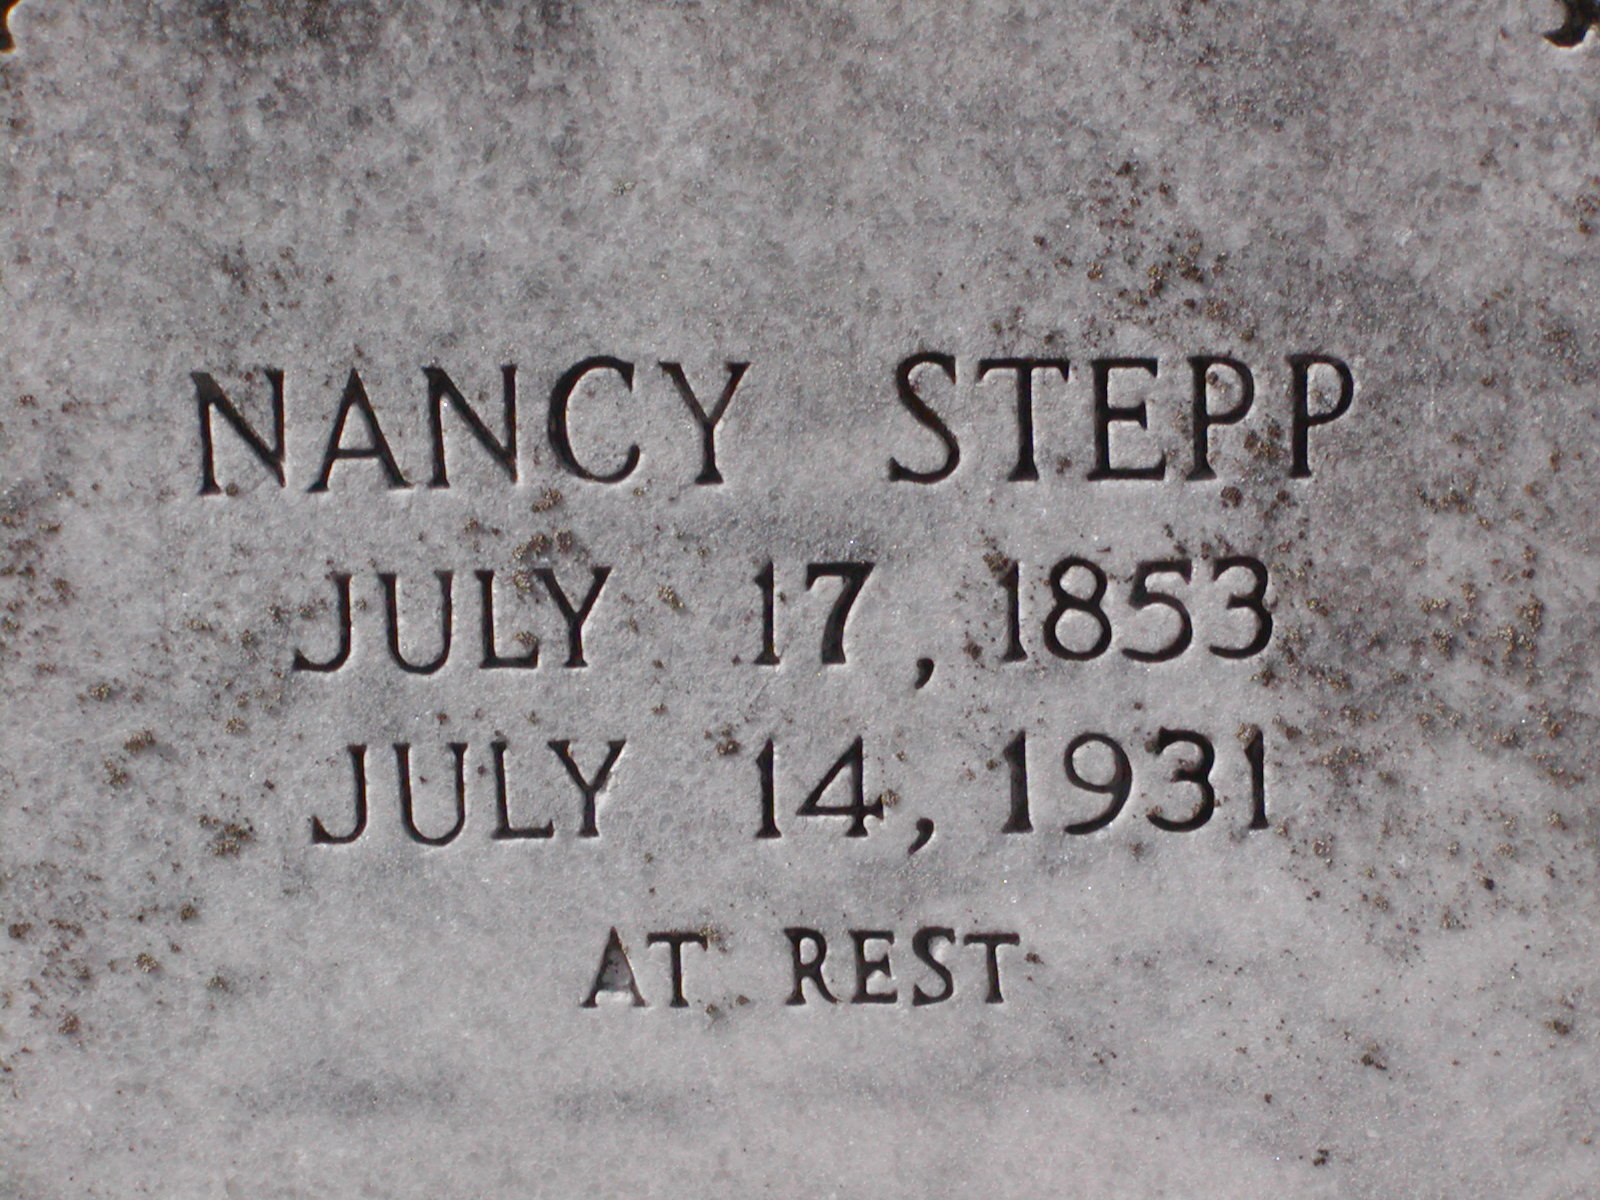 Nancy Stepp